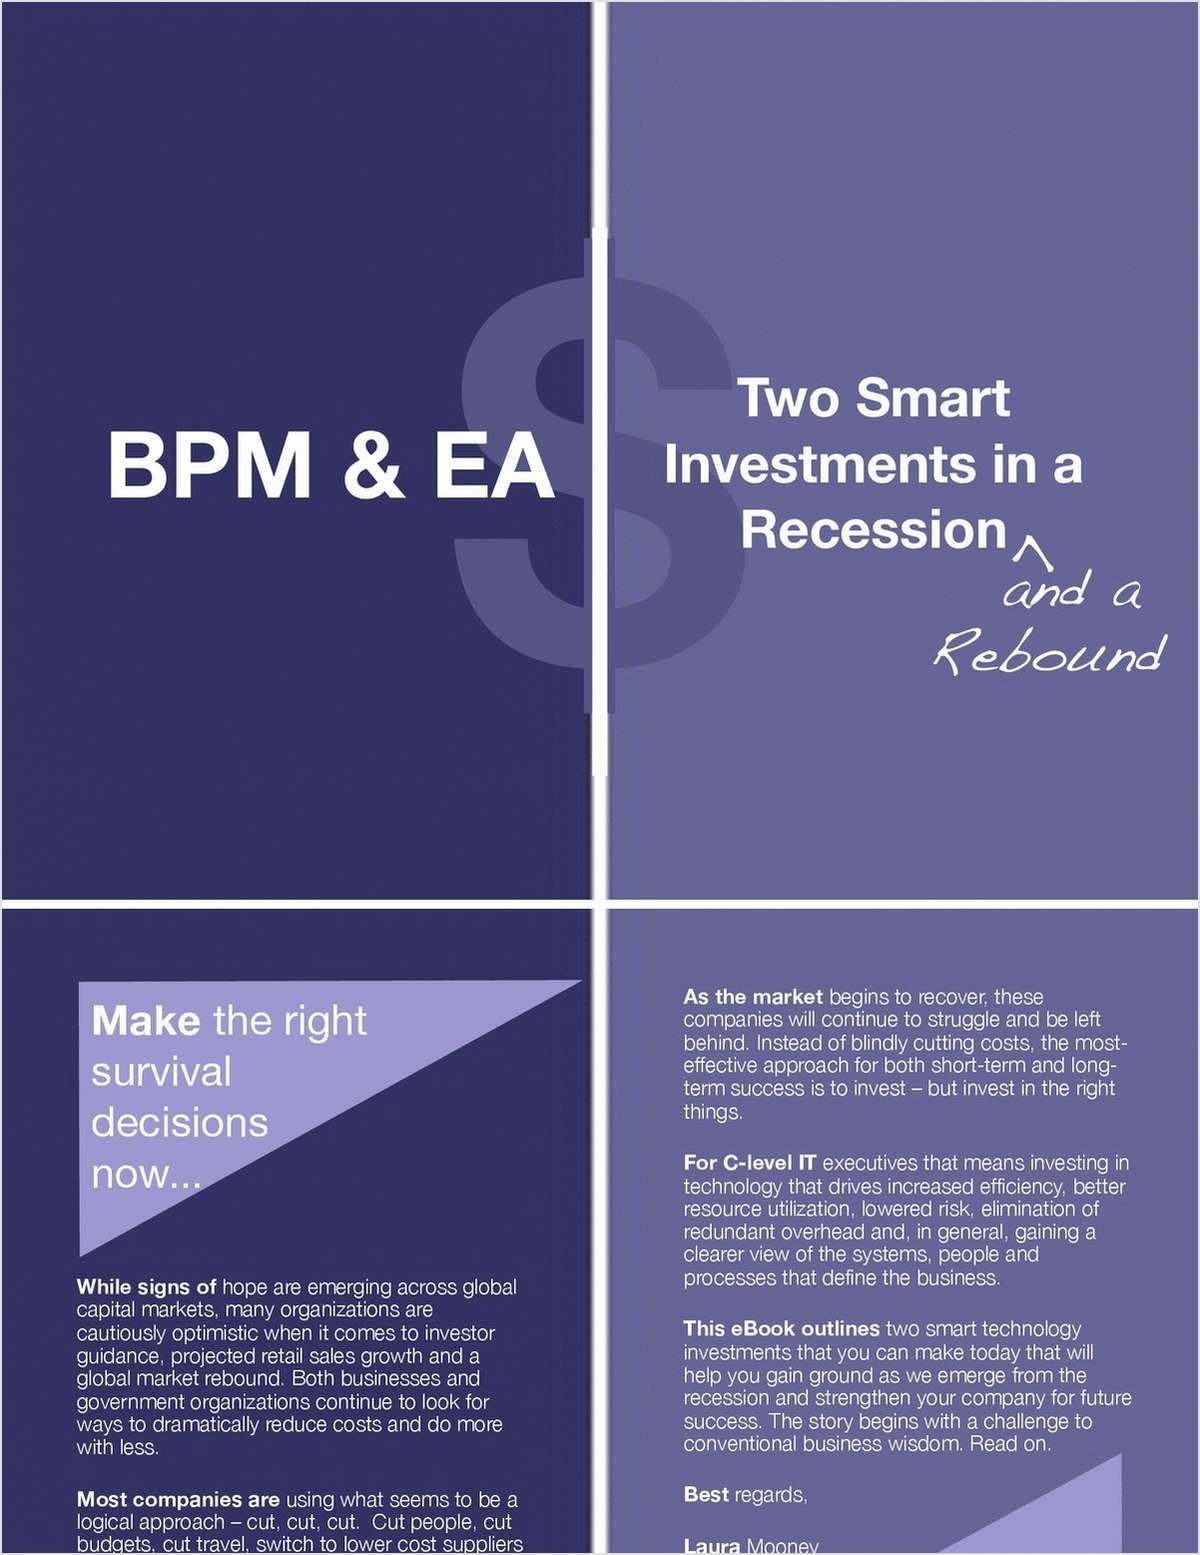 BPM & EA: Two Smart Investments in a Recession and a Rebound